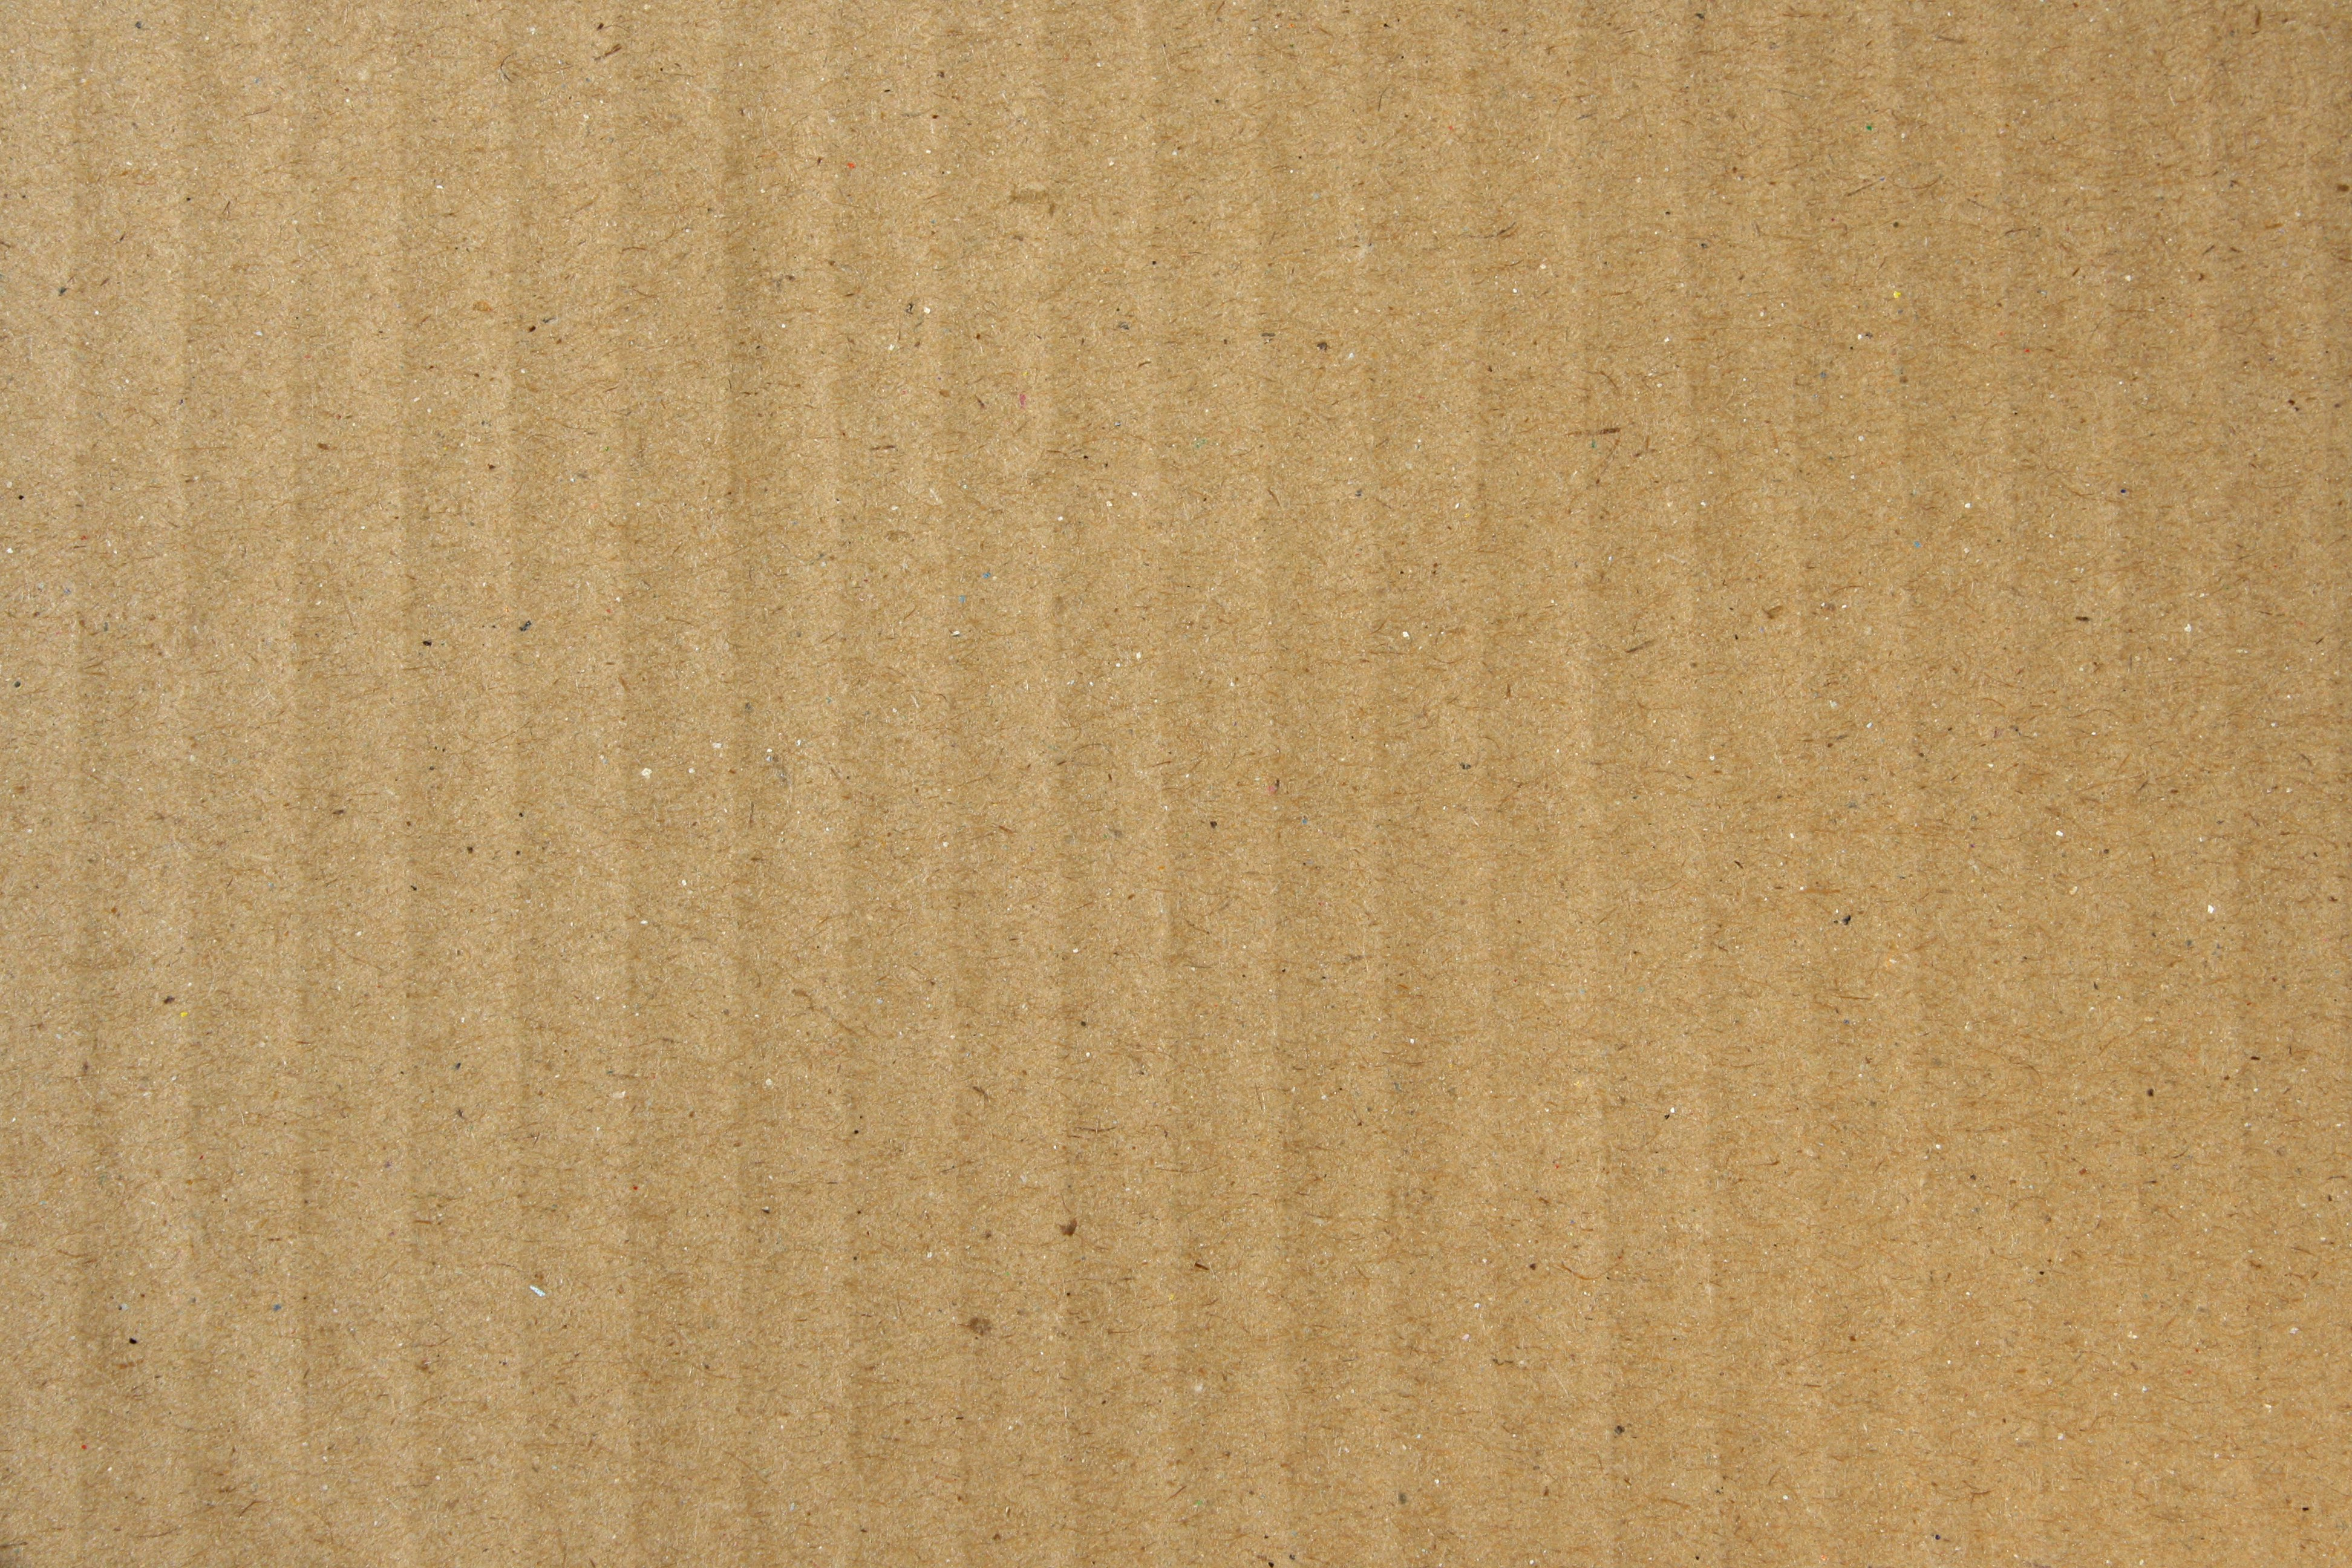 Cardboard Texture Picture   Free Photograph   Photos Public Domain Cardboard Texture